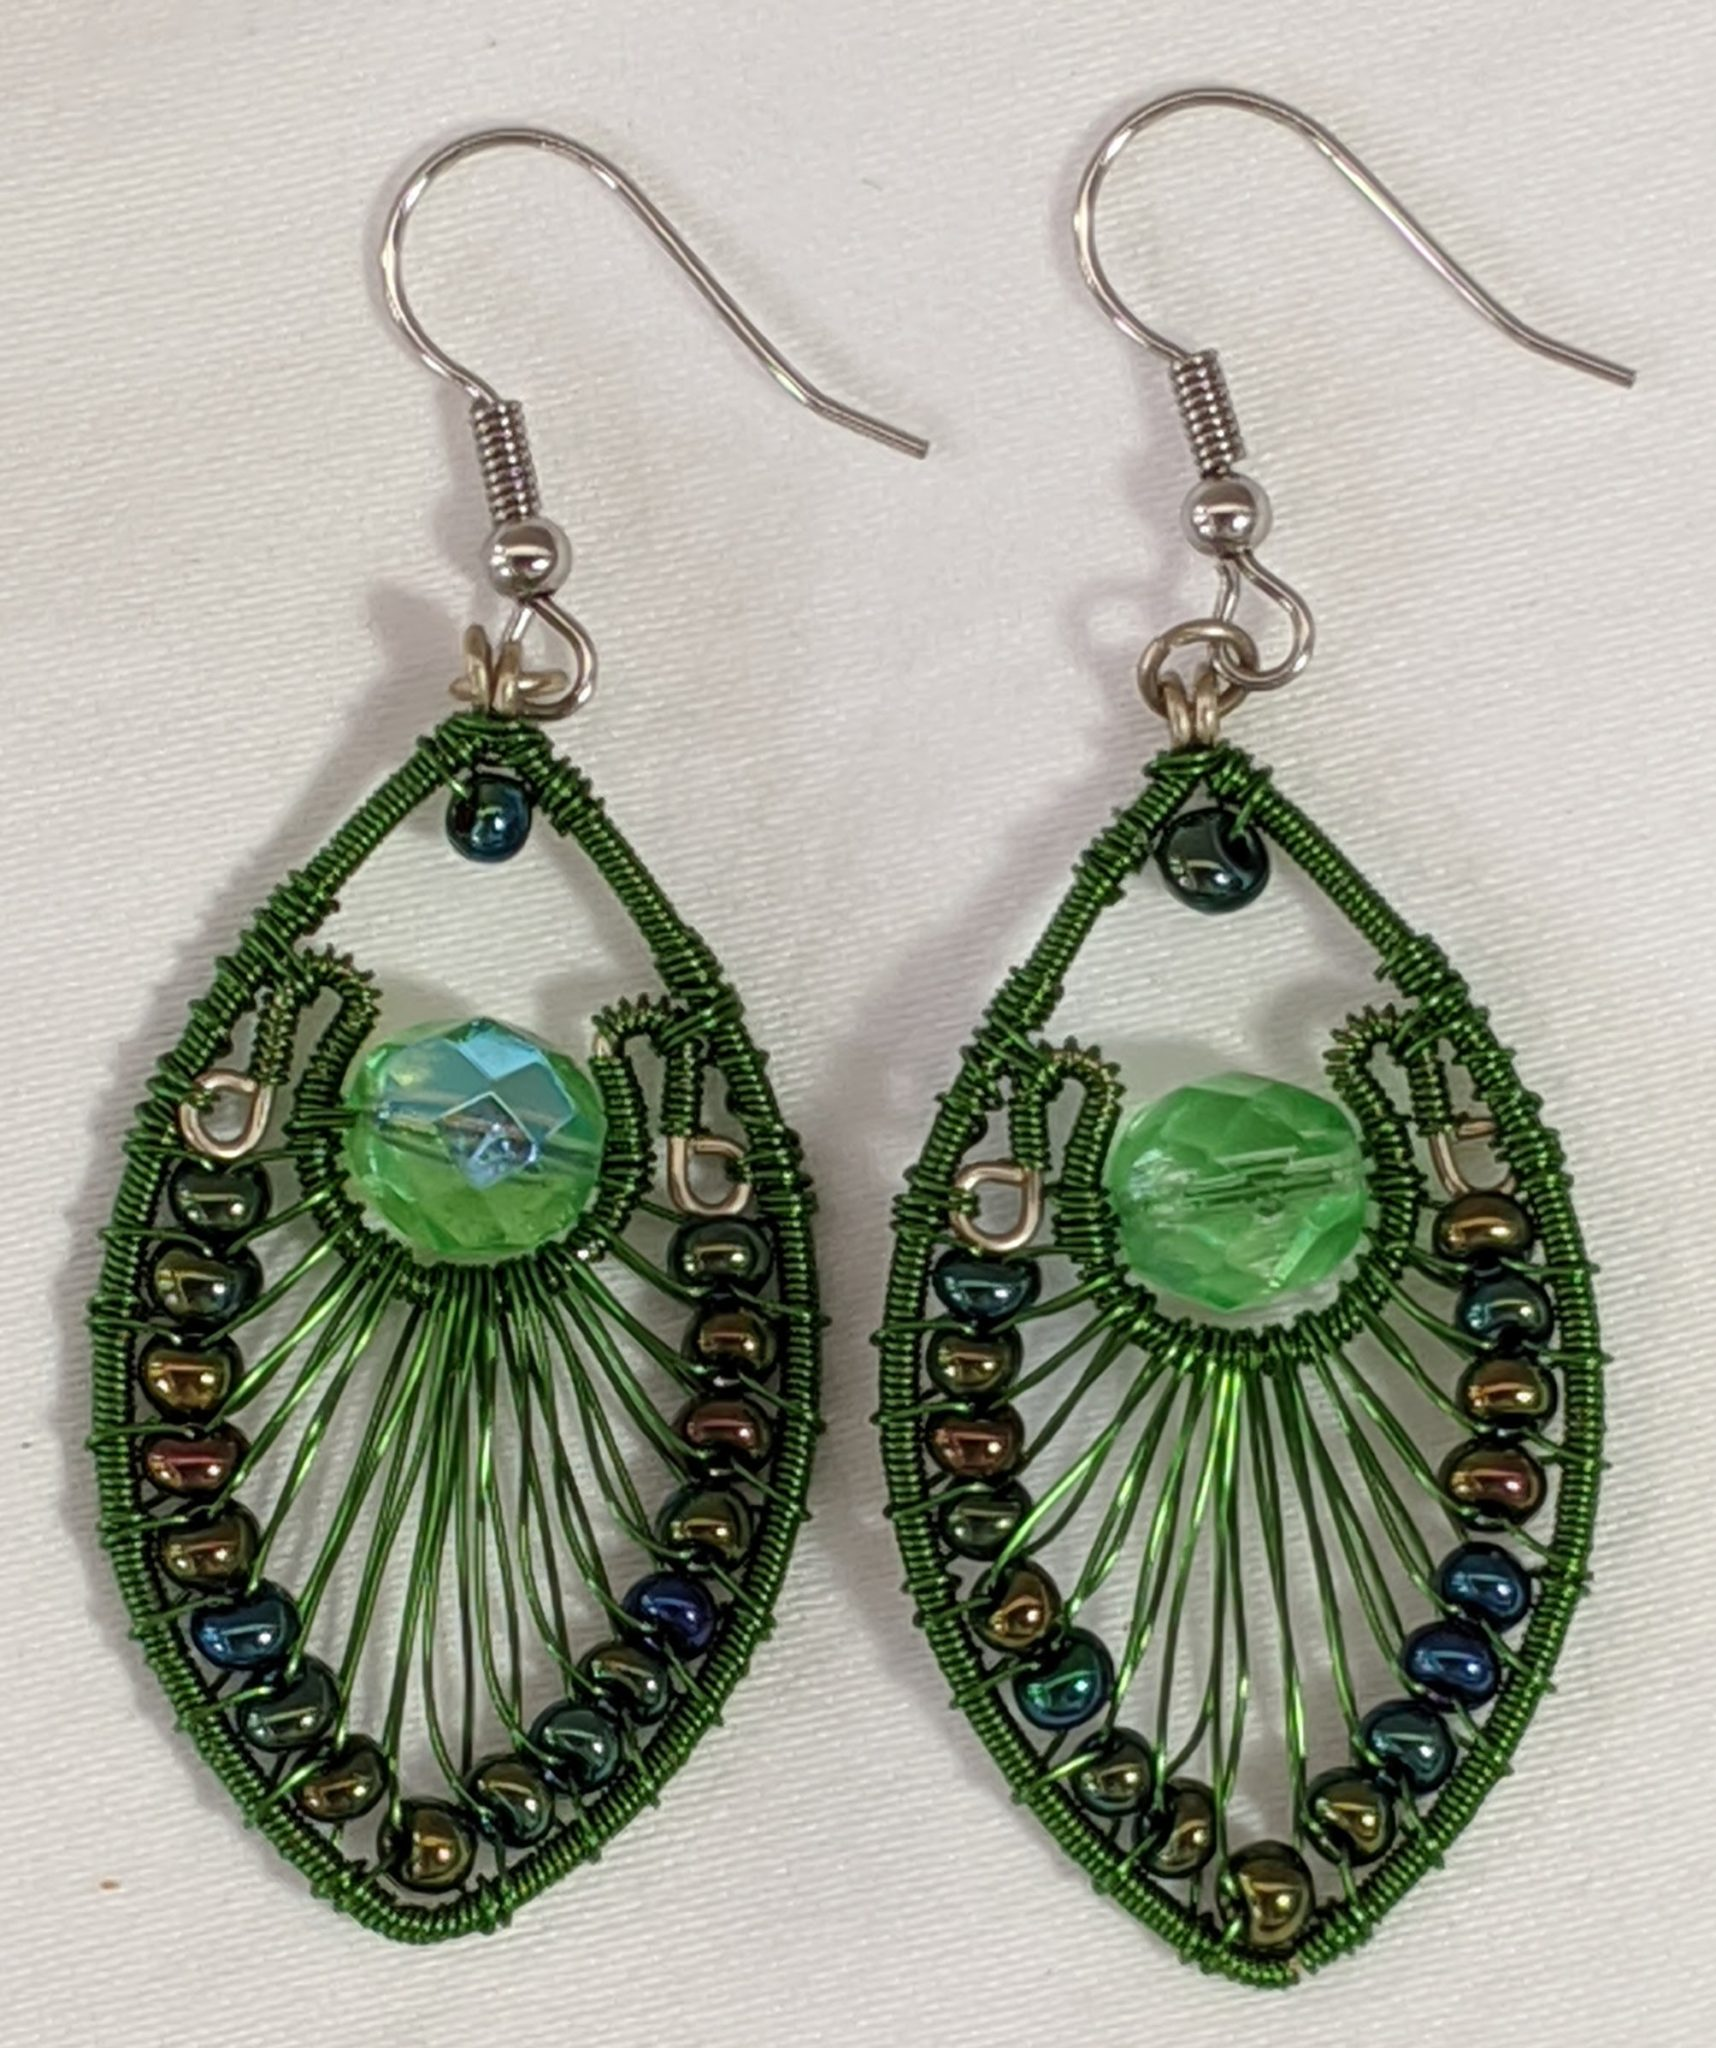 Peacock Earrings - Green